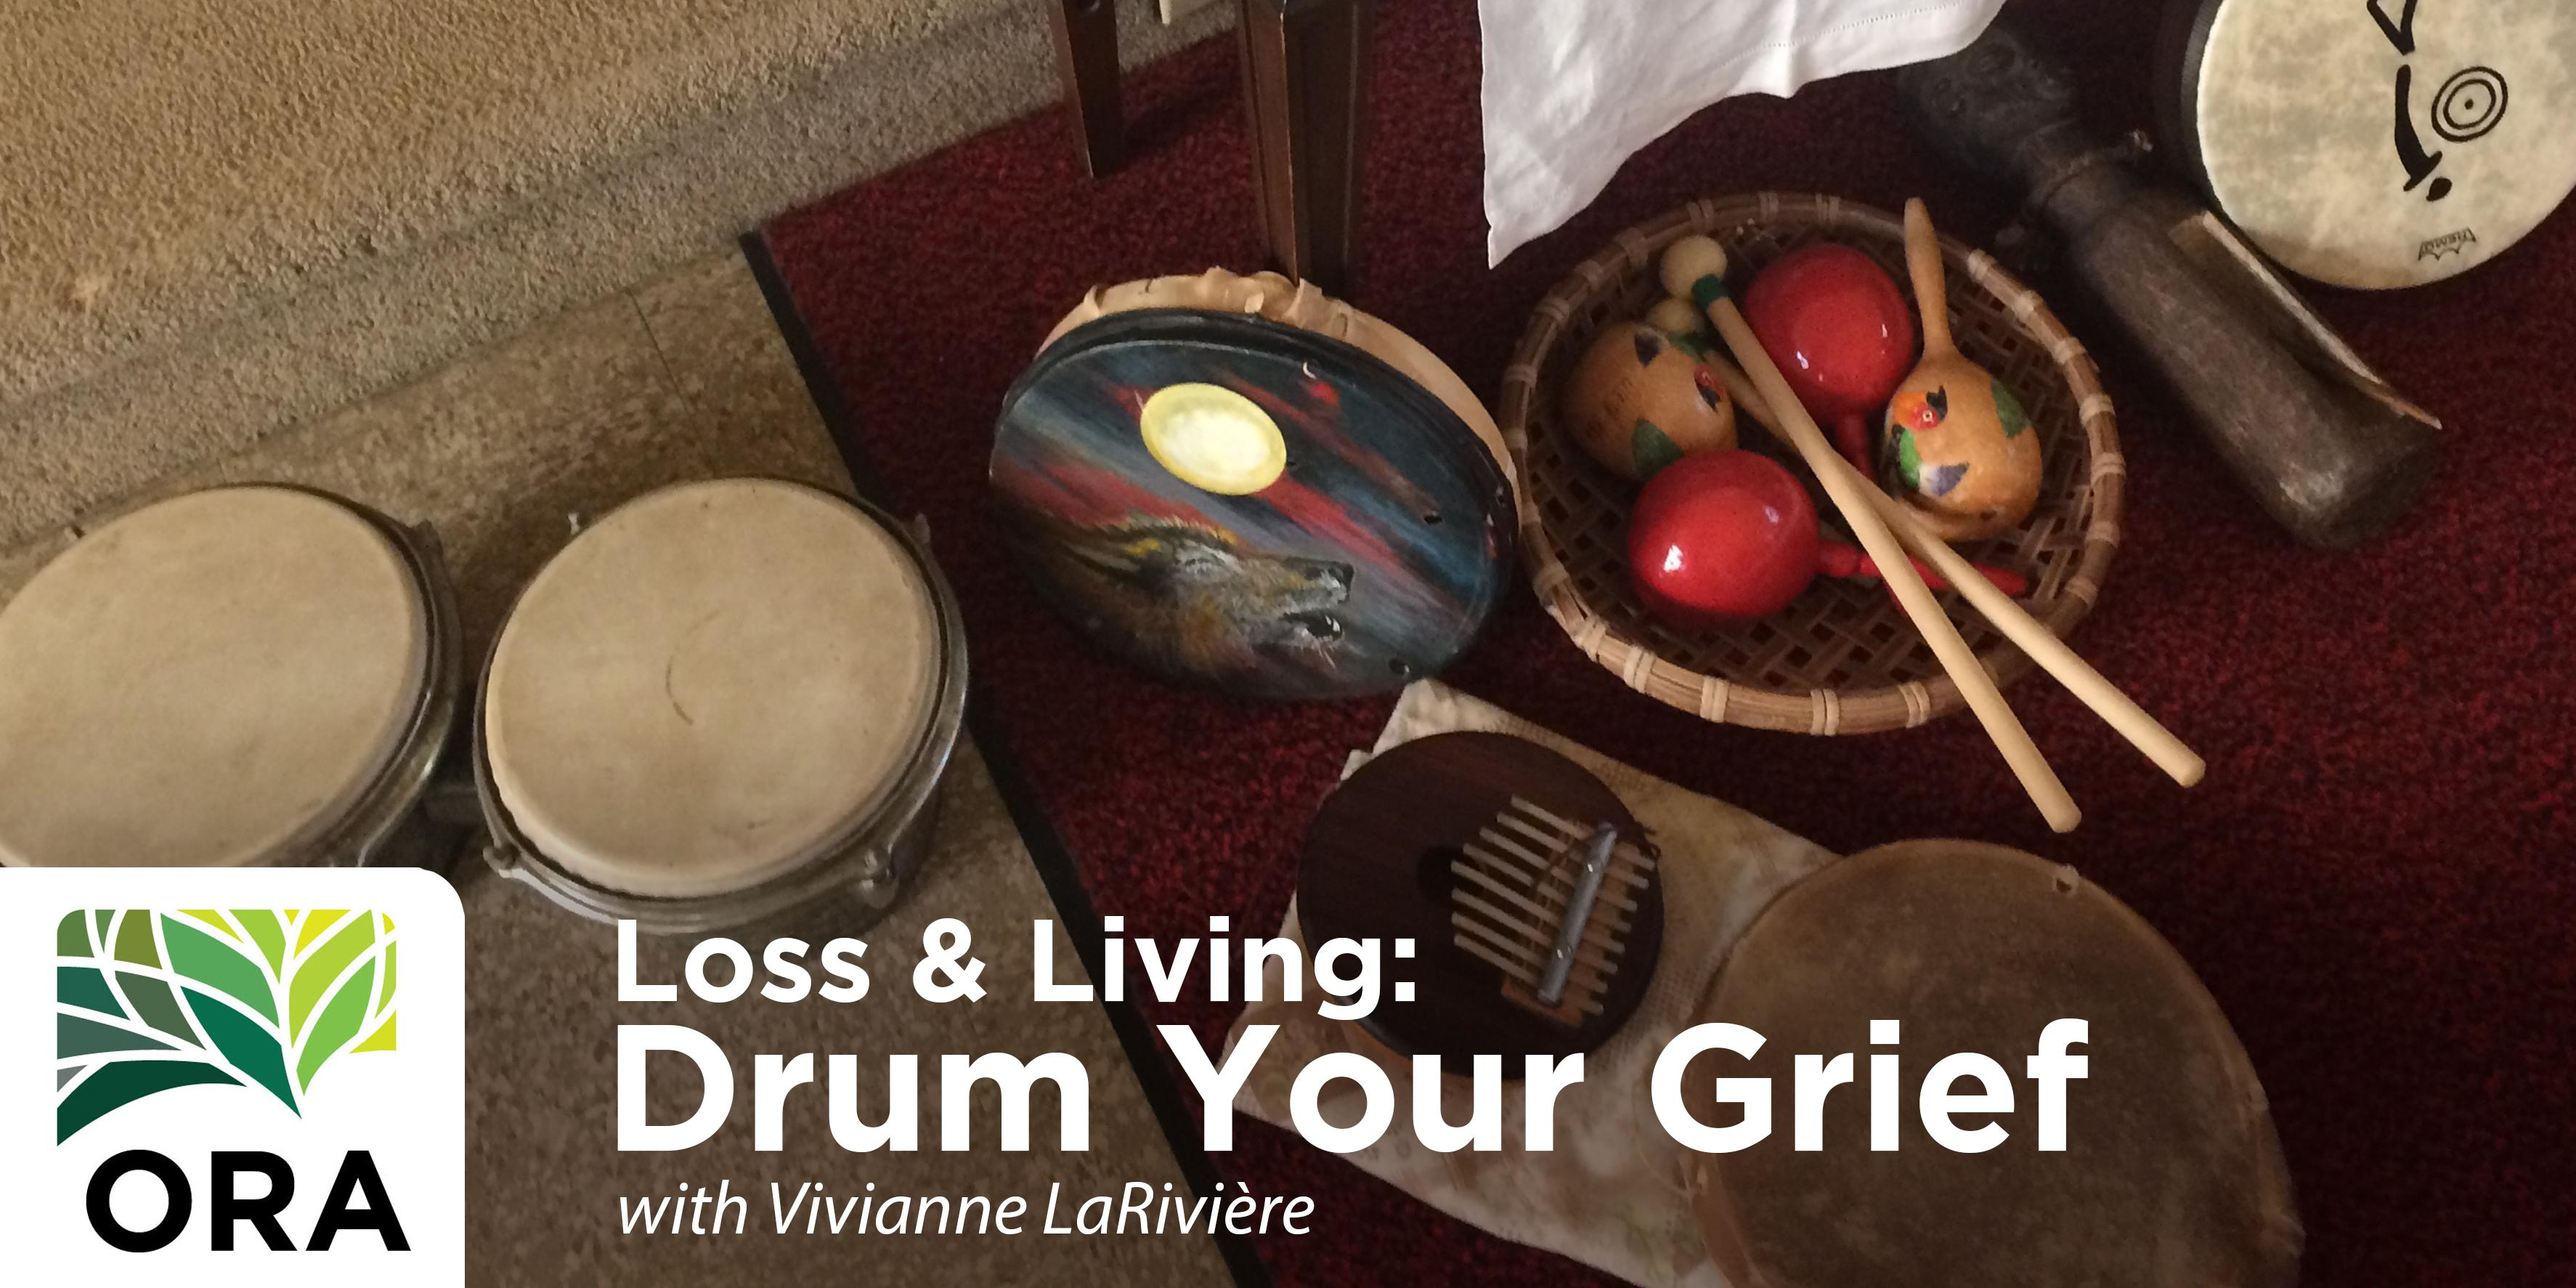 Loss & Living: Drum Your Grief